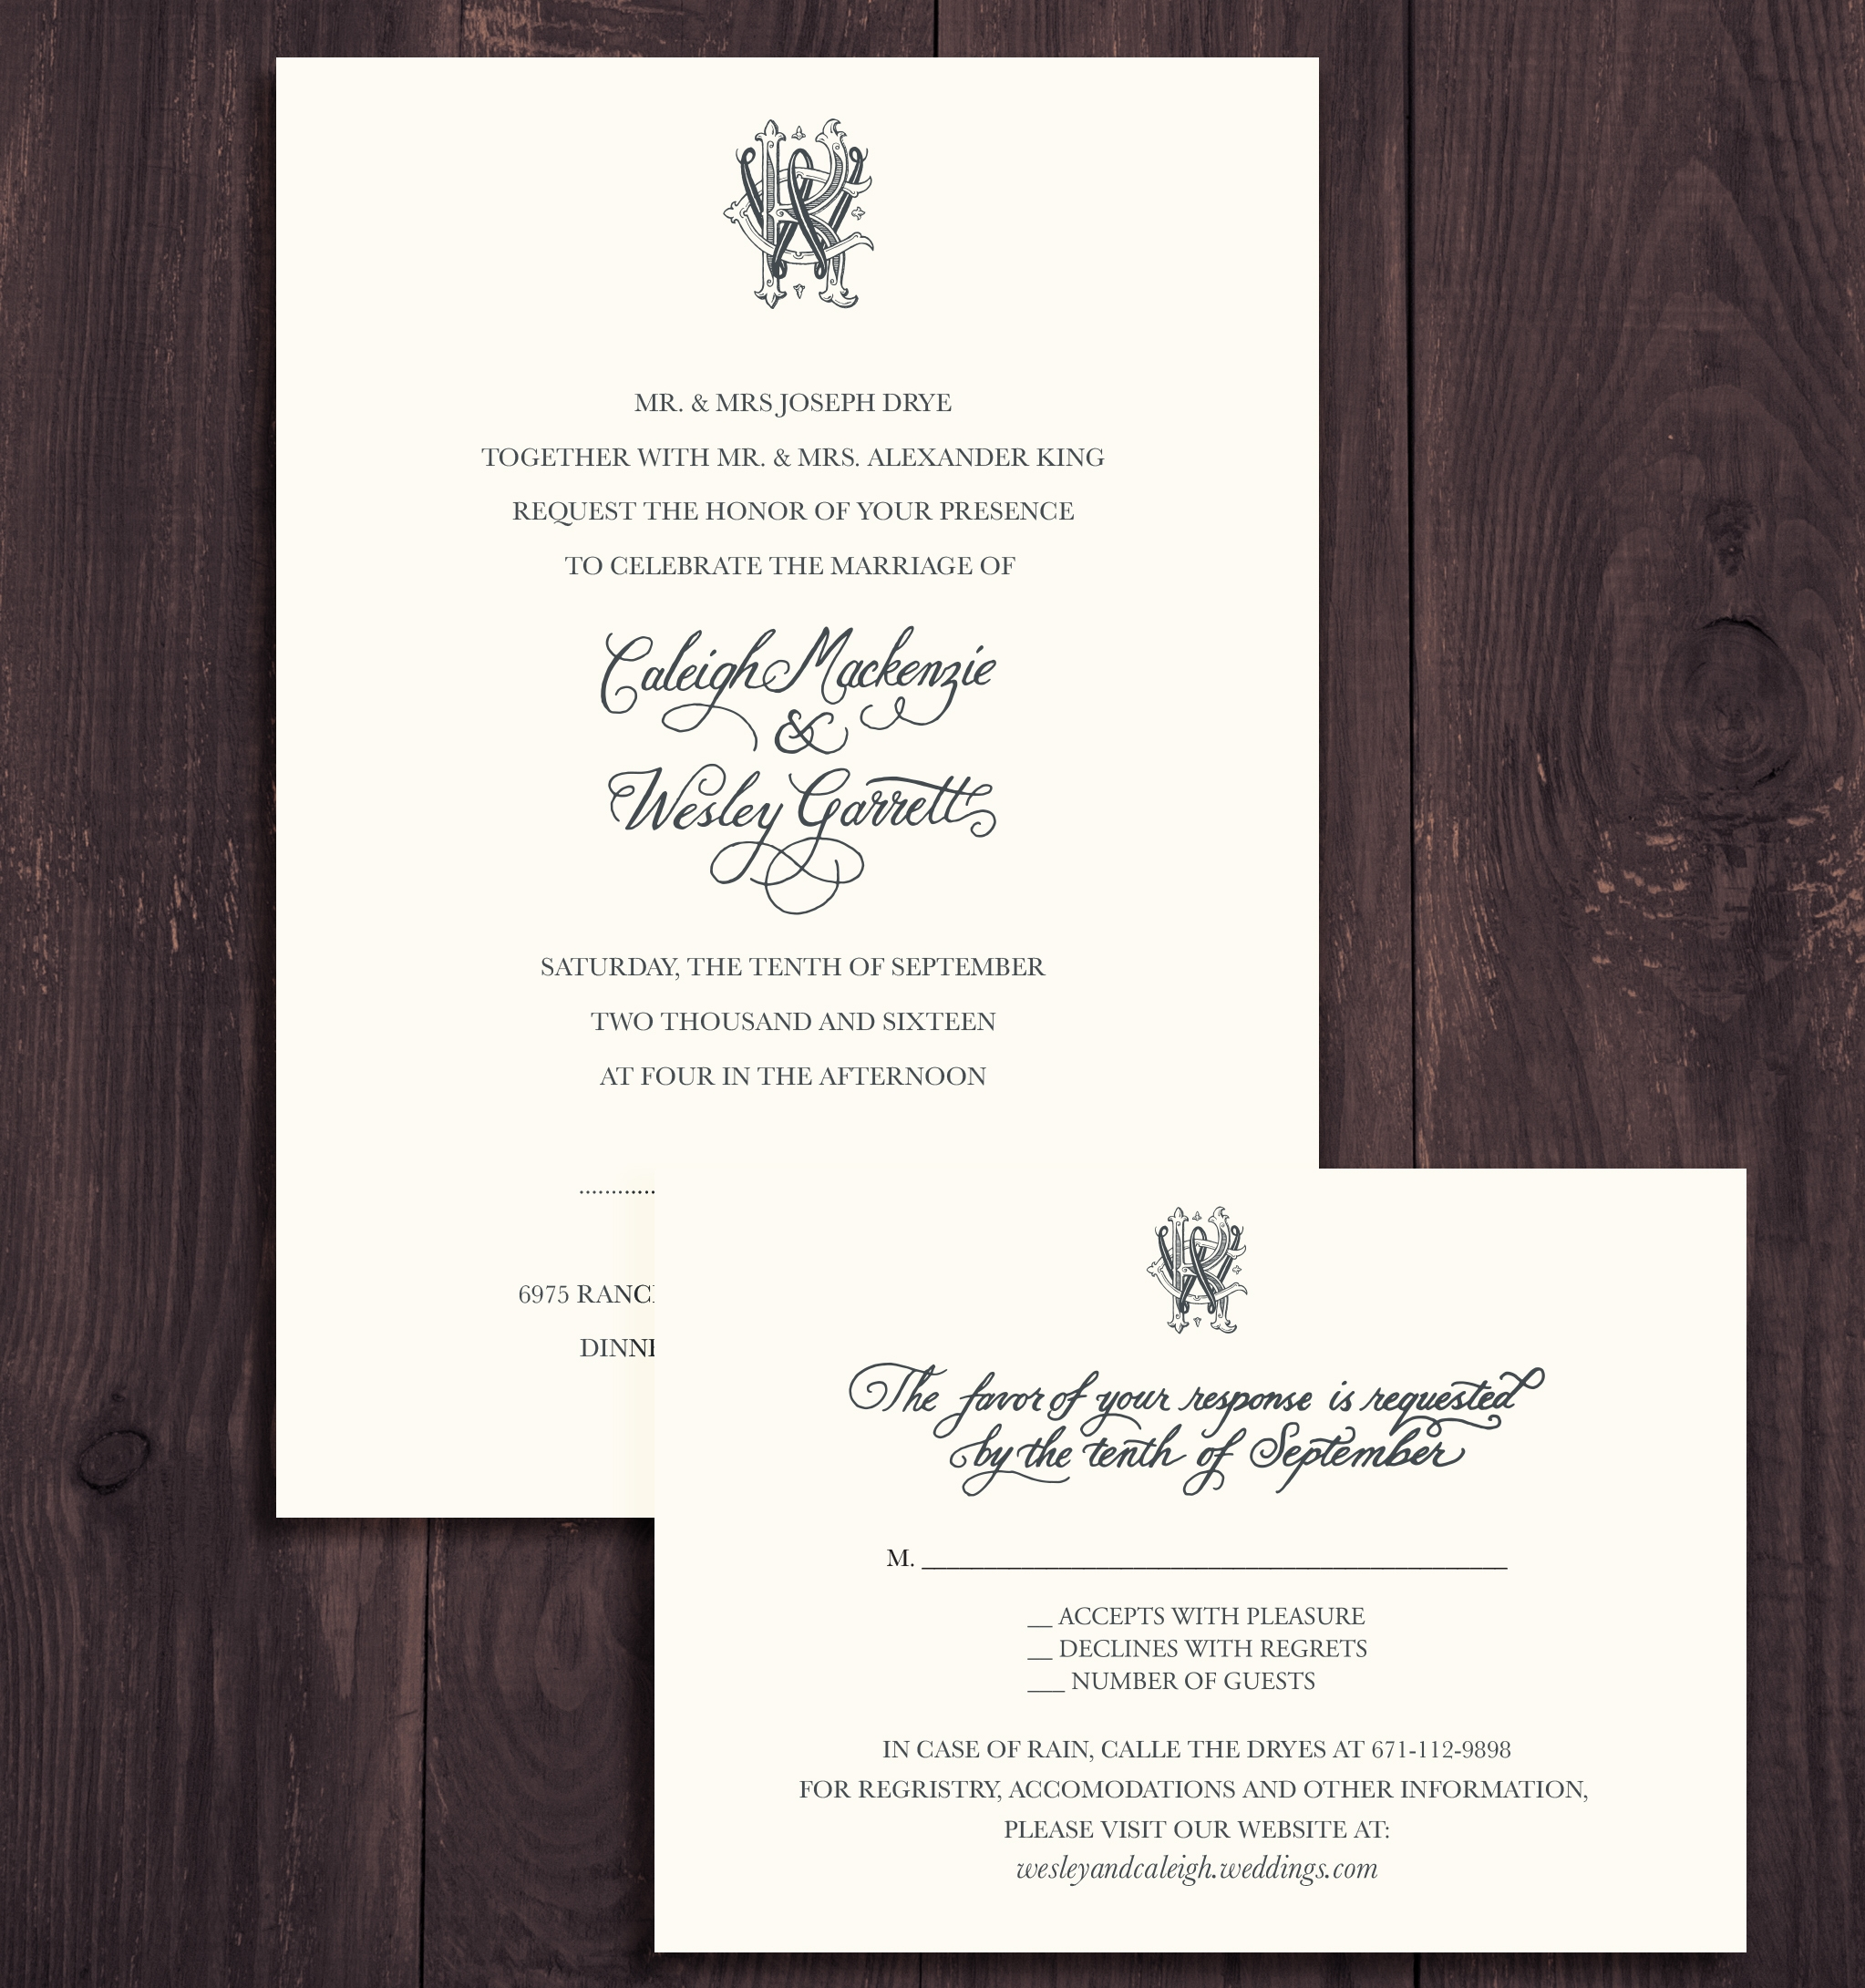 Wedding Invitation Mockup.jpg